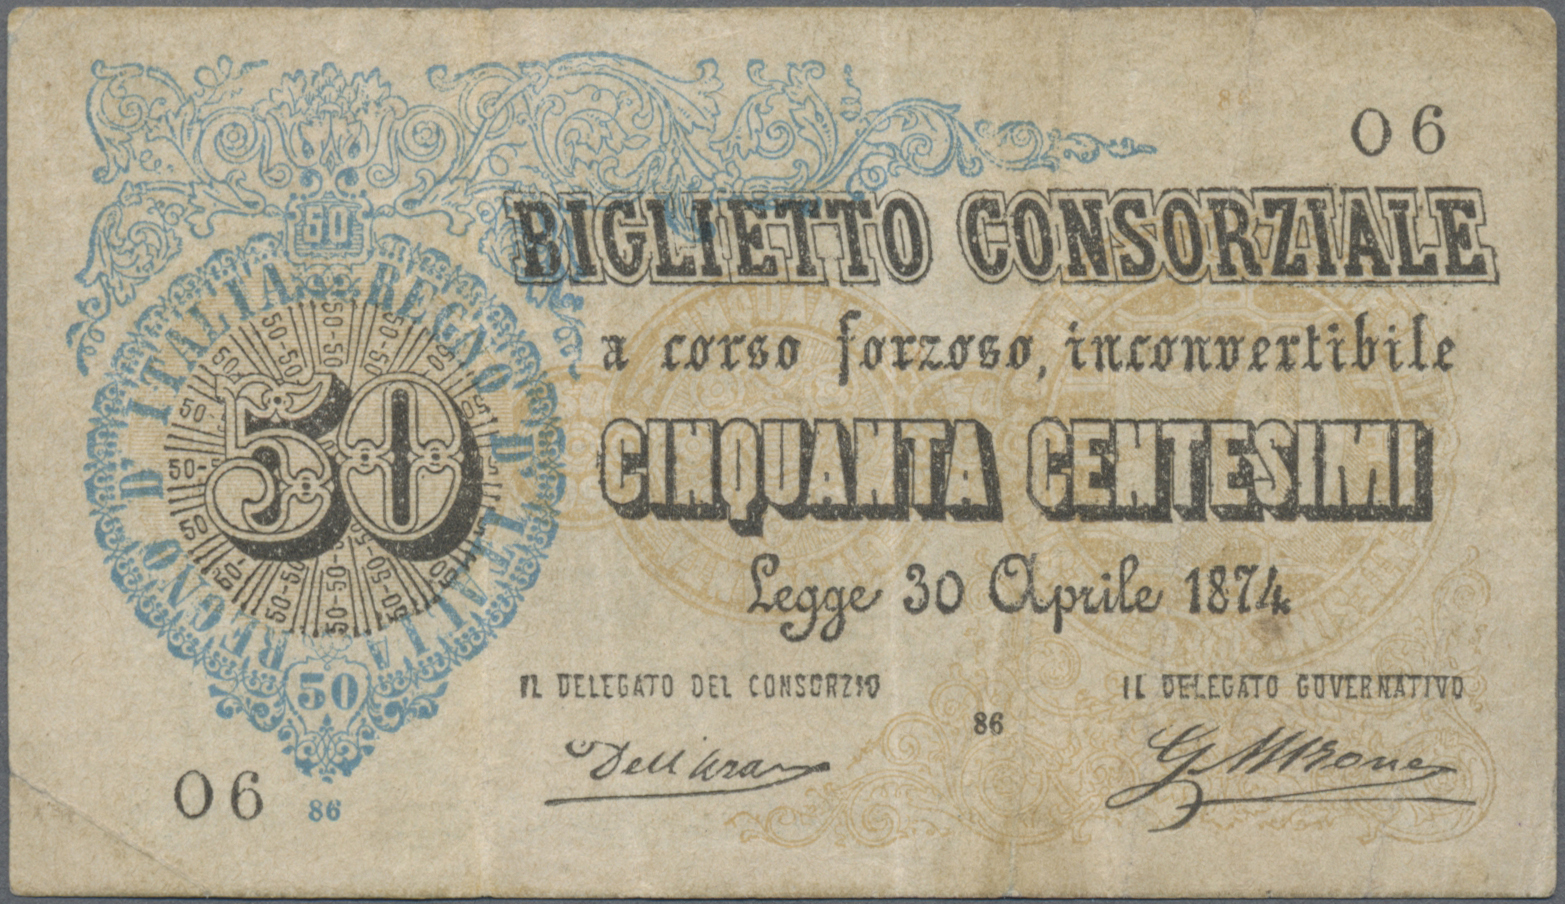 Lot 01054 - Italy / Italien | Banknoten  -  Auktionshaus Christoph Gärtner GmbH & Co. KG Sale #48 The Banknotes